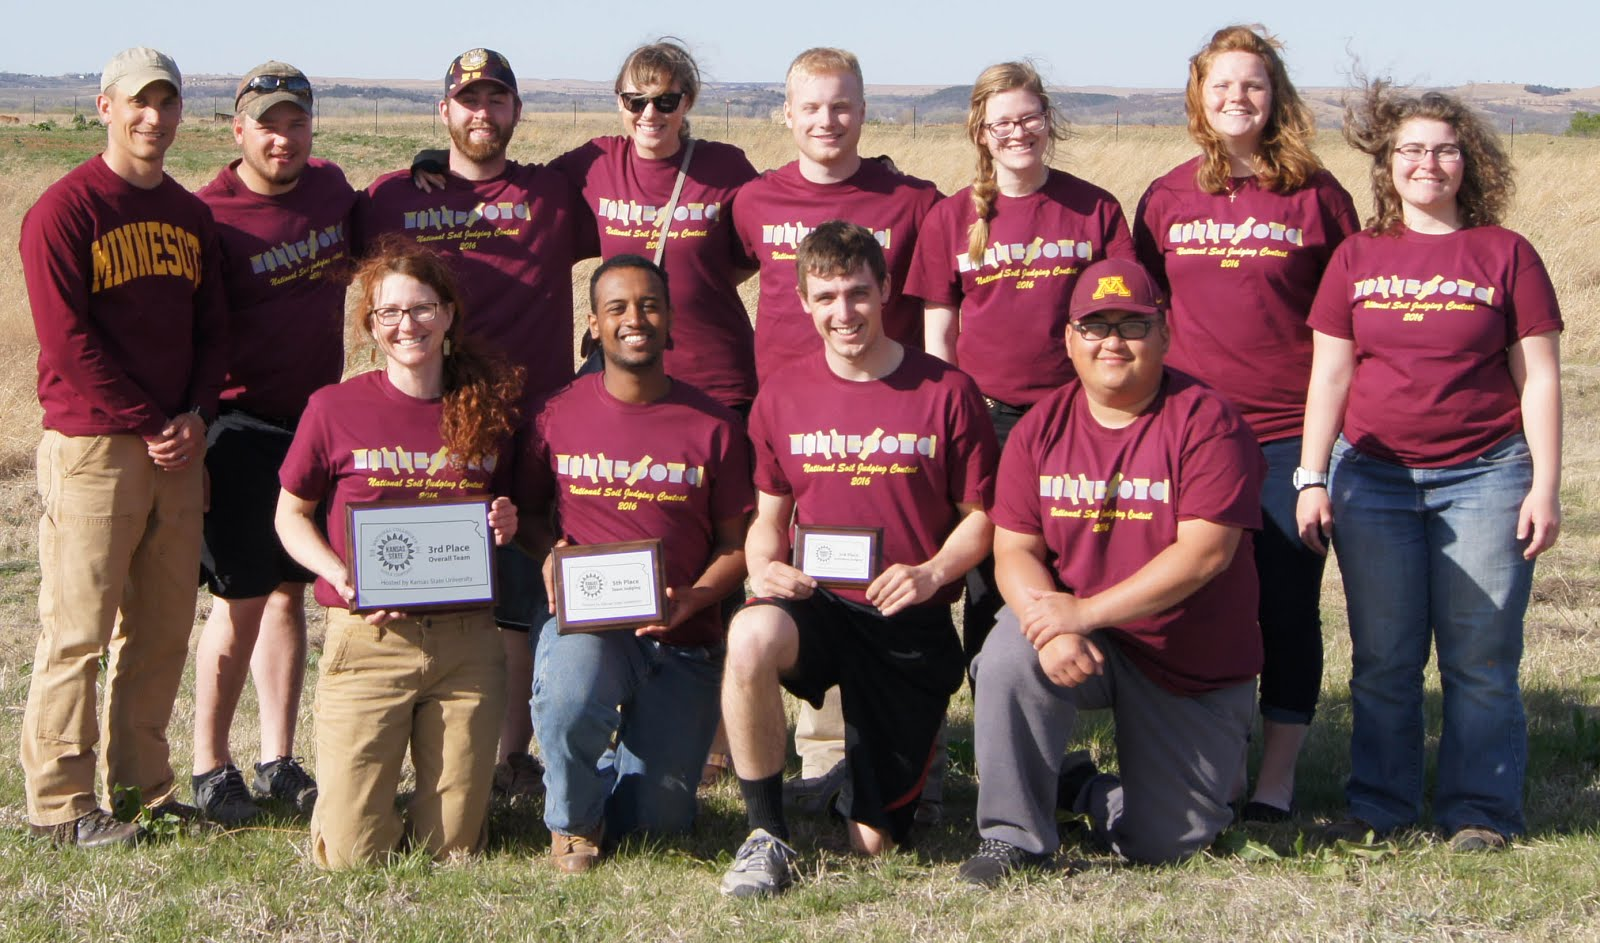 2016 University of Minnesota National Soil Judging Team